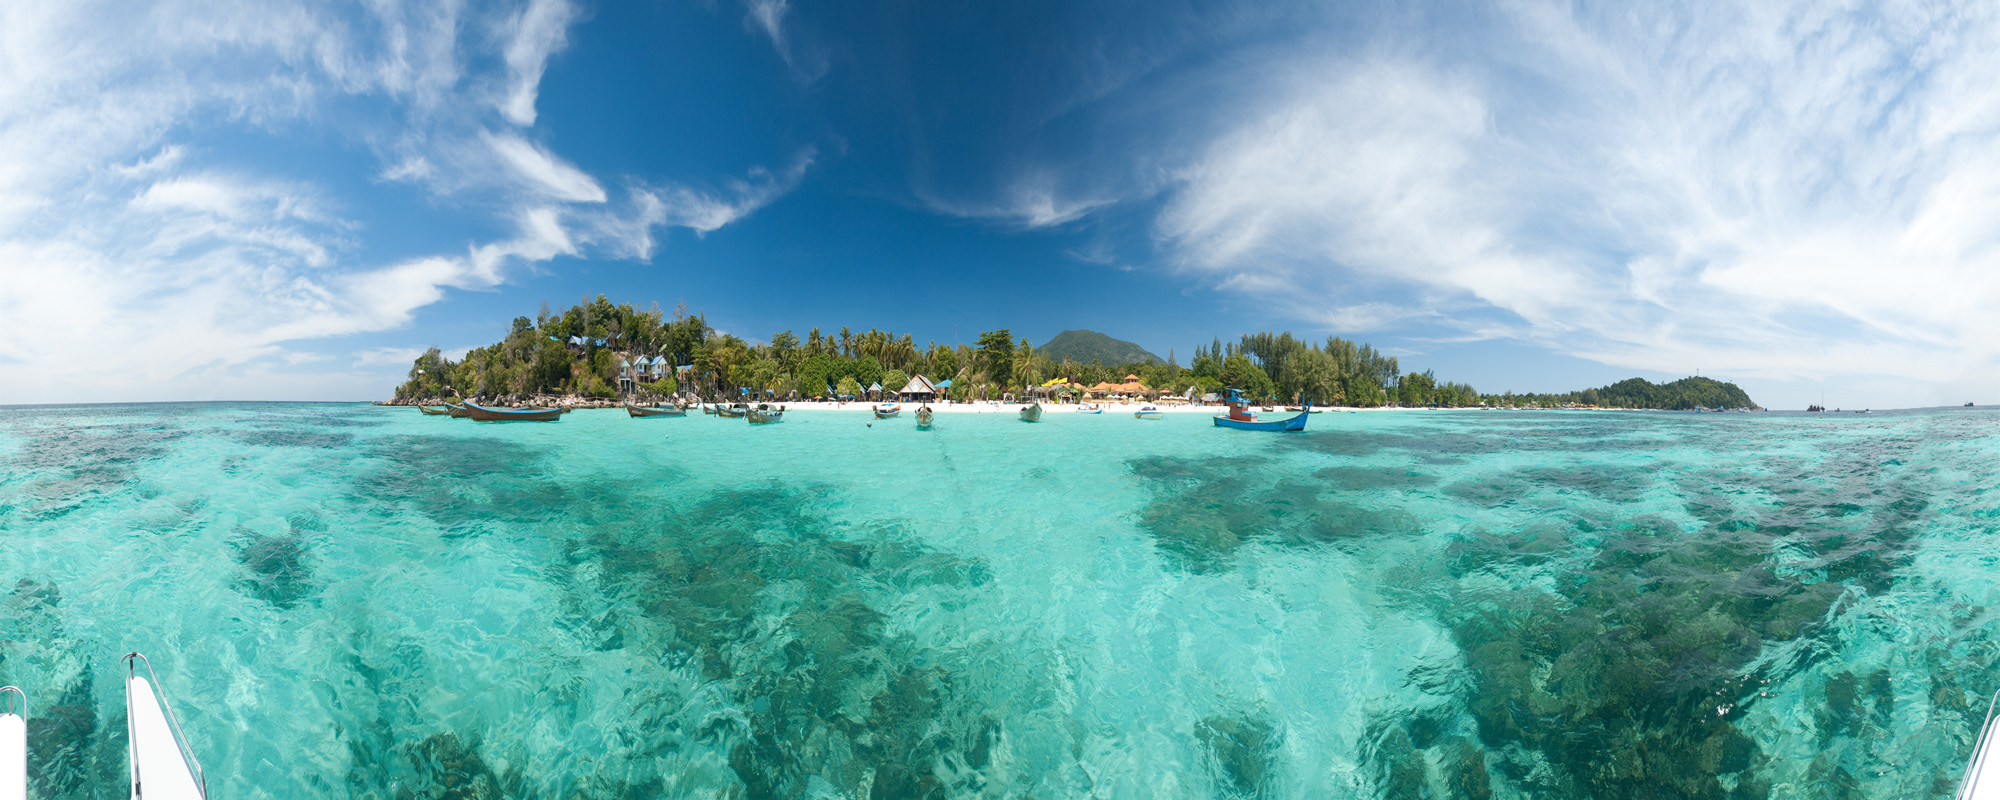 A use-controlled panorama of Pattaya Beach from the water. - Ko Lipe, Thailand - Daily Travel Photos